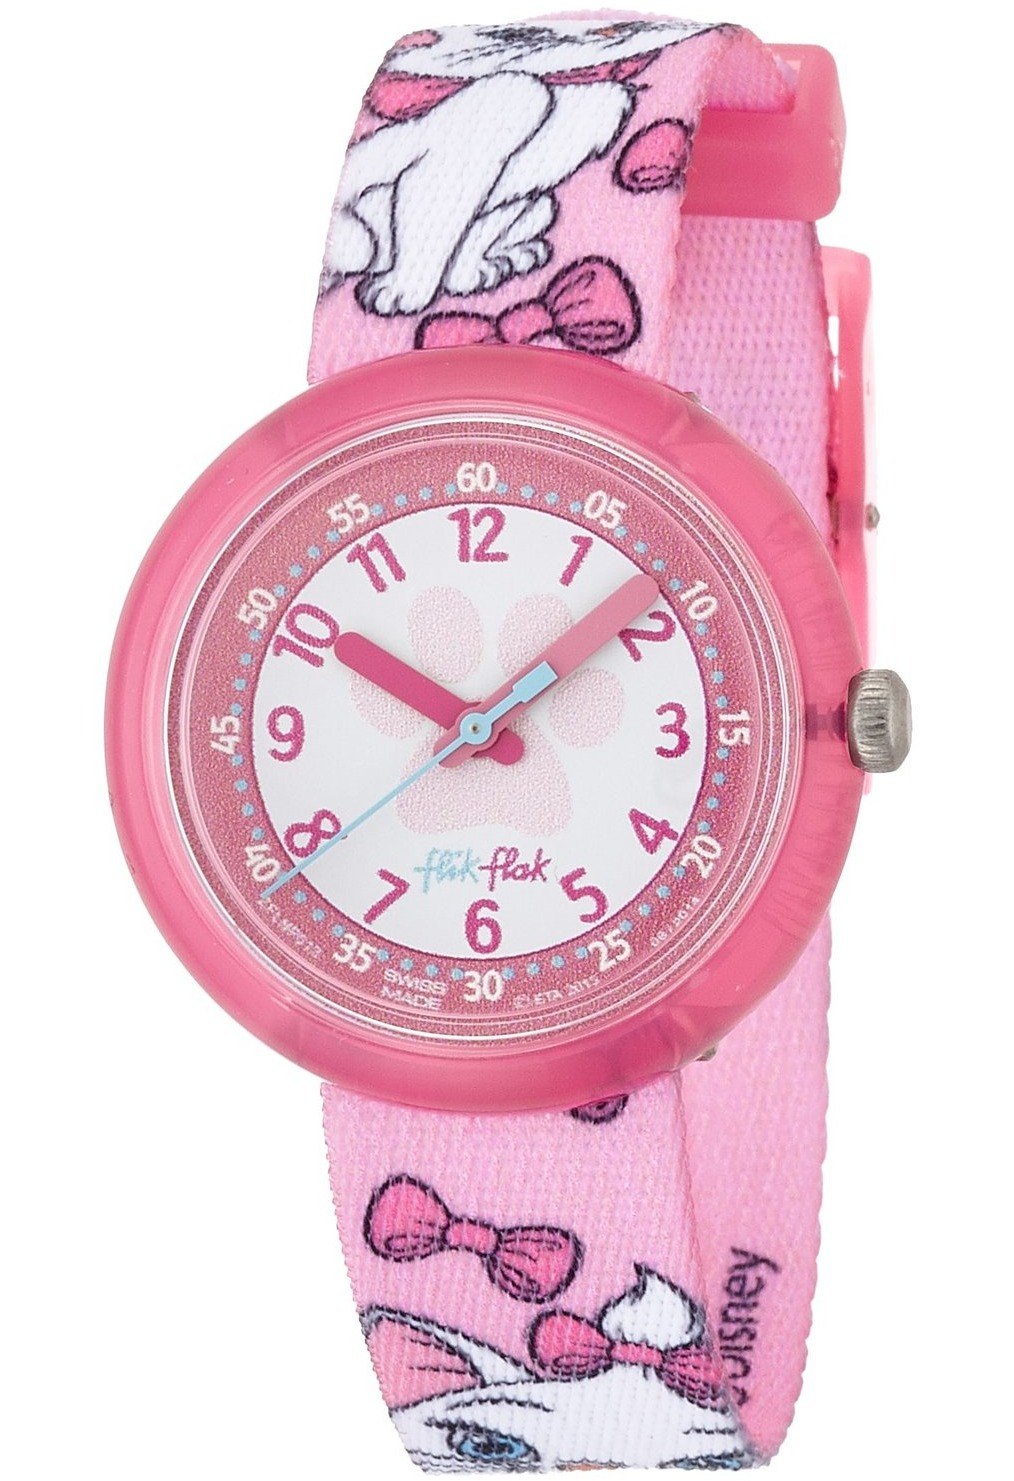 montre disney aristocats marie flnp013 flik flak rose montres co